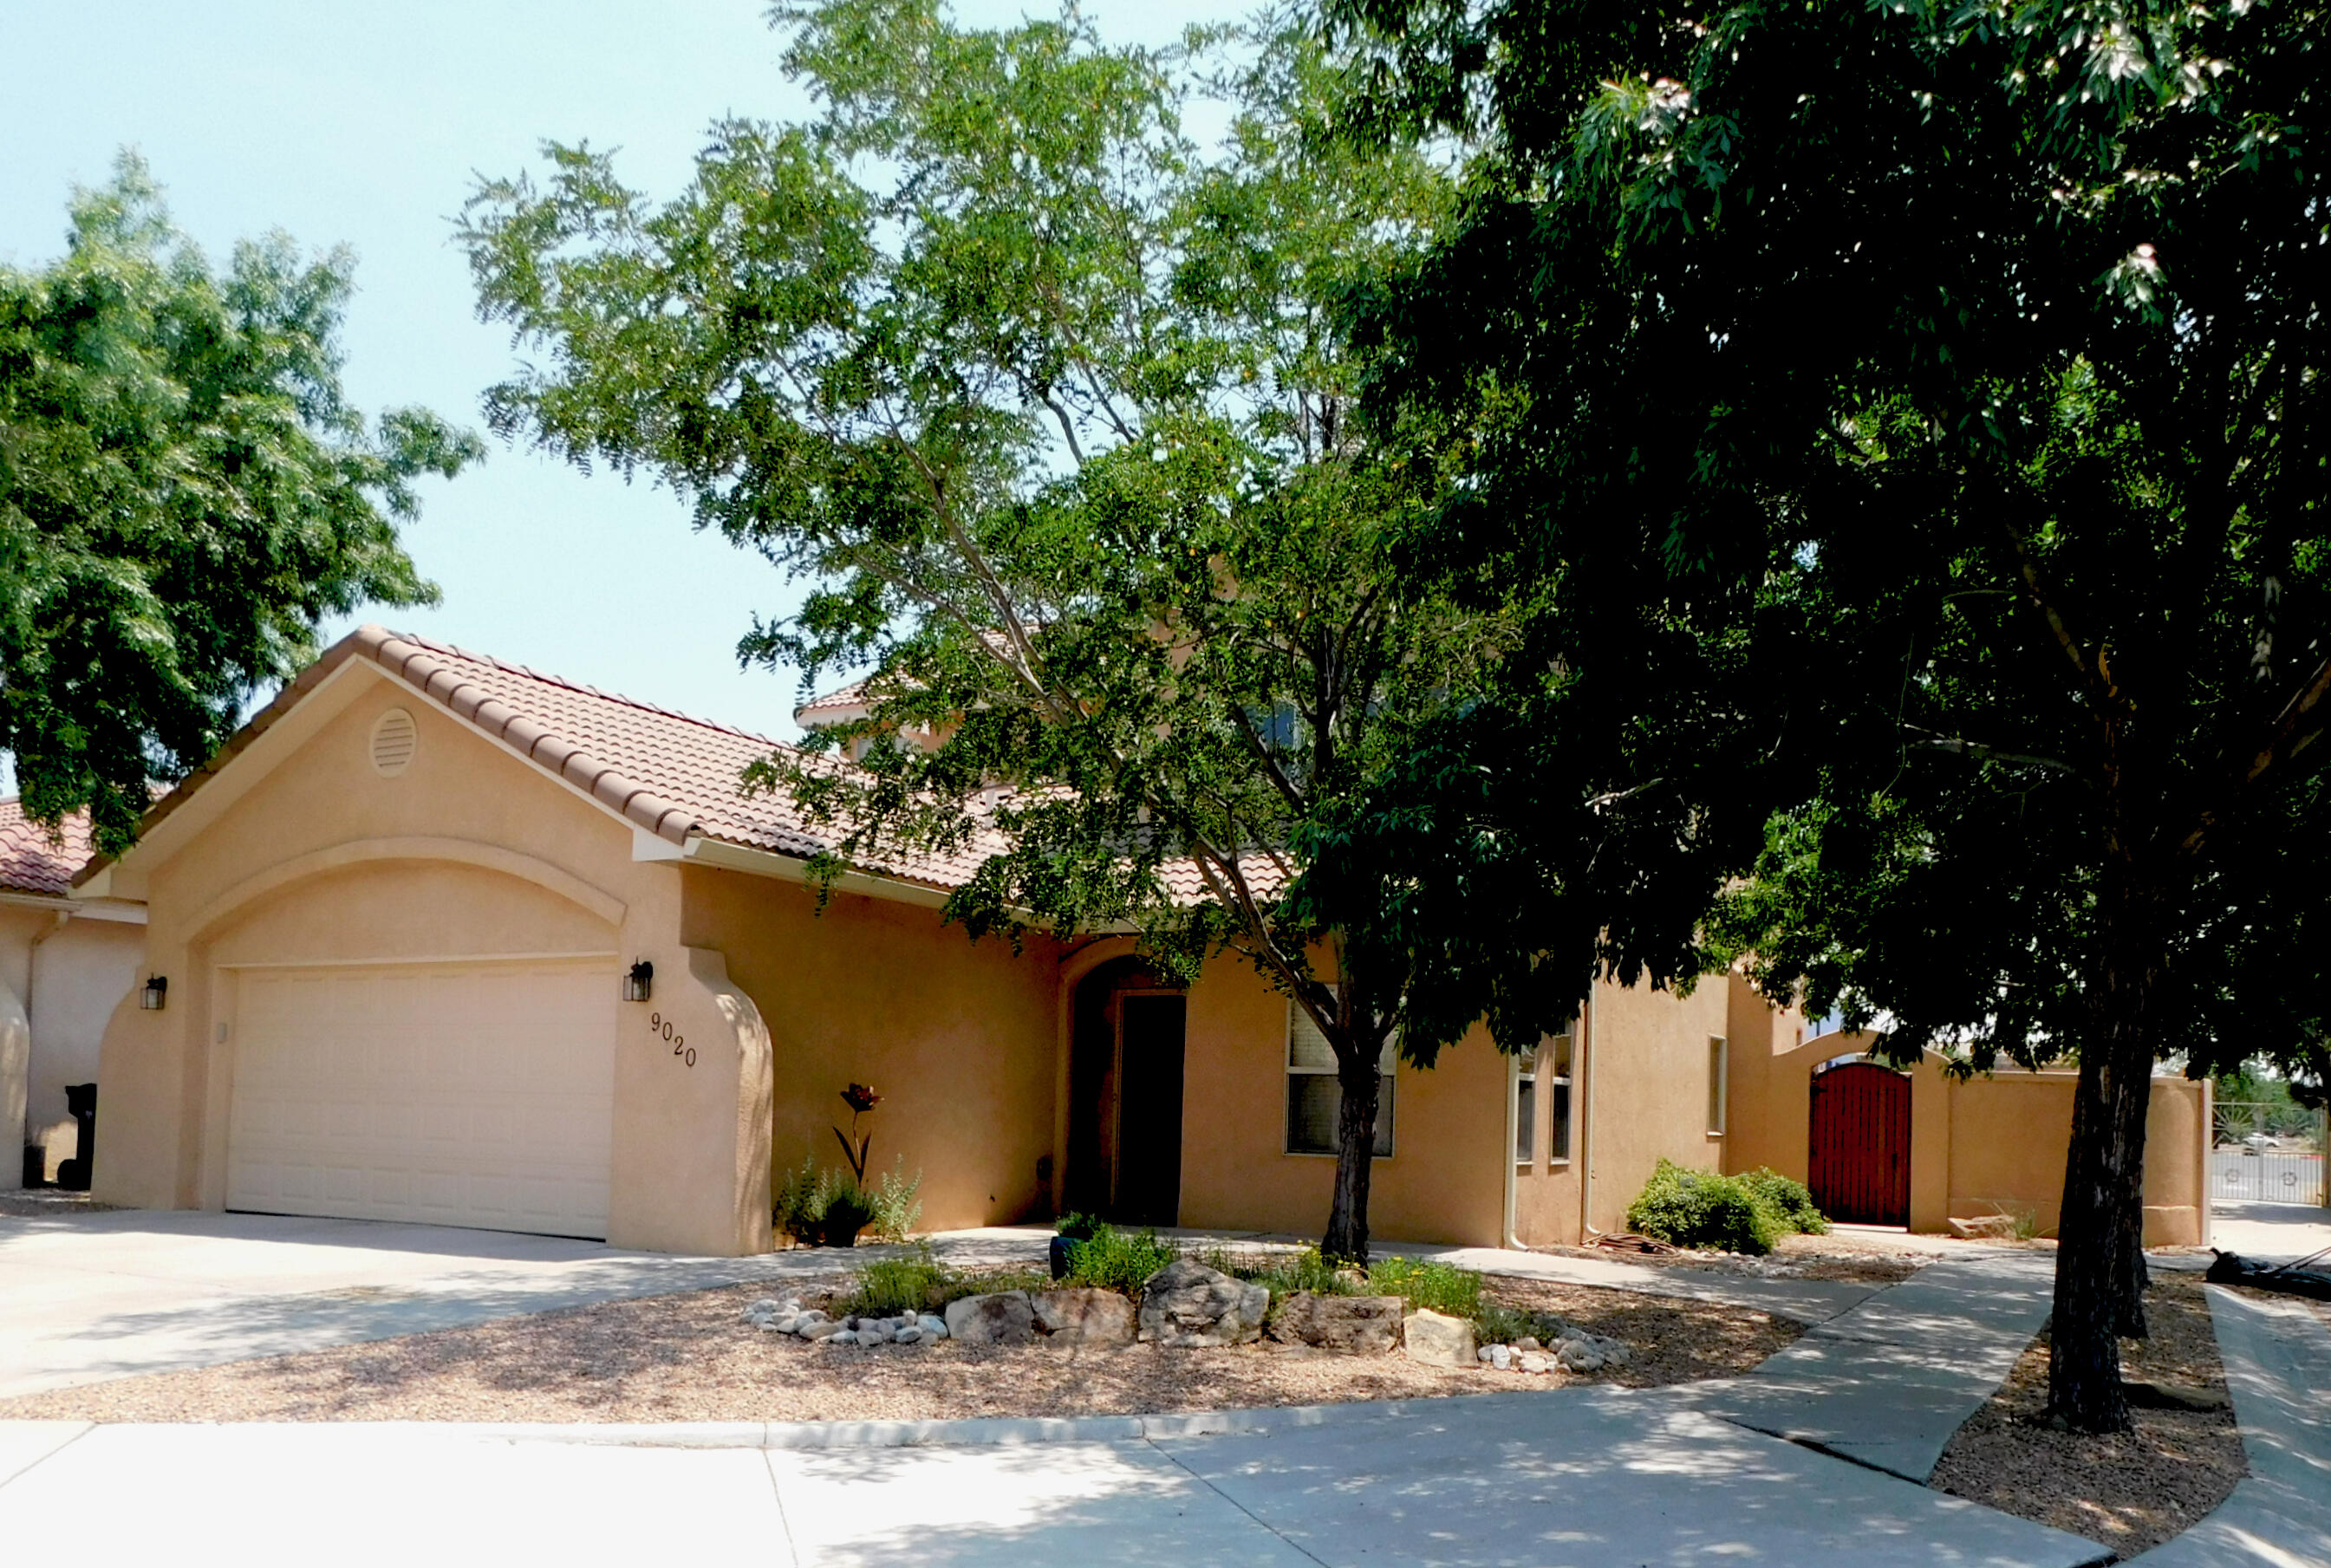 Located in the La Cueva school district on a private corner lot with no neighbor behind. The efficient country kitchen has a breakfast nook, stainless steel appliances, an Island, pantry and a bar for easy service to the adjacent formal dining room. Main bedroom with private ensuite is located on the lower floor. The private backyard paradise boasts a fan cooled covered patio and a 20 X 8 foot balcony, both overlook two waterfalls with a bridge to lead you over a running stream to the private hot tub. A 13 foot long griller's dream has a built in charcoal grill and a natural gas stainless steel rotisserie grill and burner with plenty of counter space on either side for a buffet or whatever! The finished garage has a 220 outlet and pull down steps to the storage attic. Shopping close by!